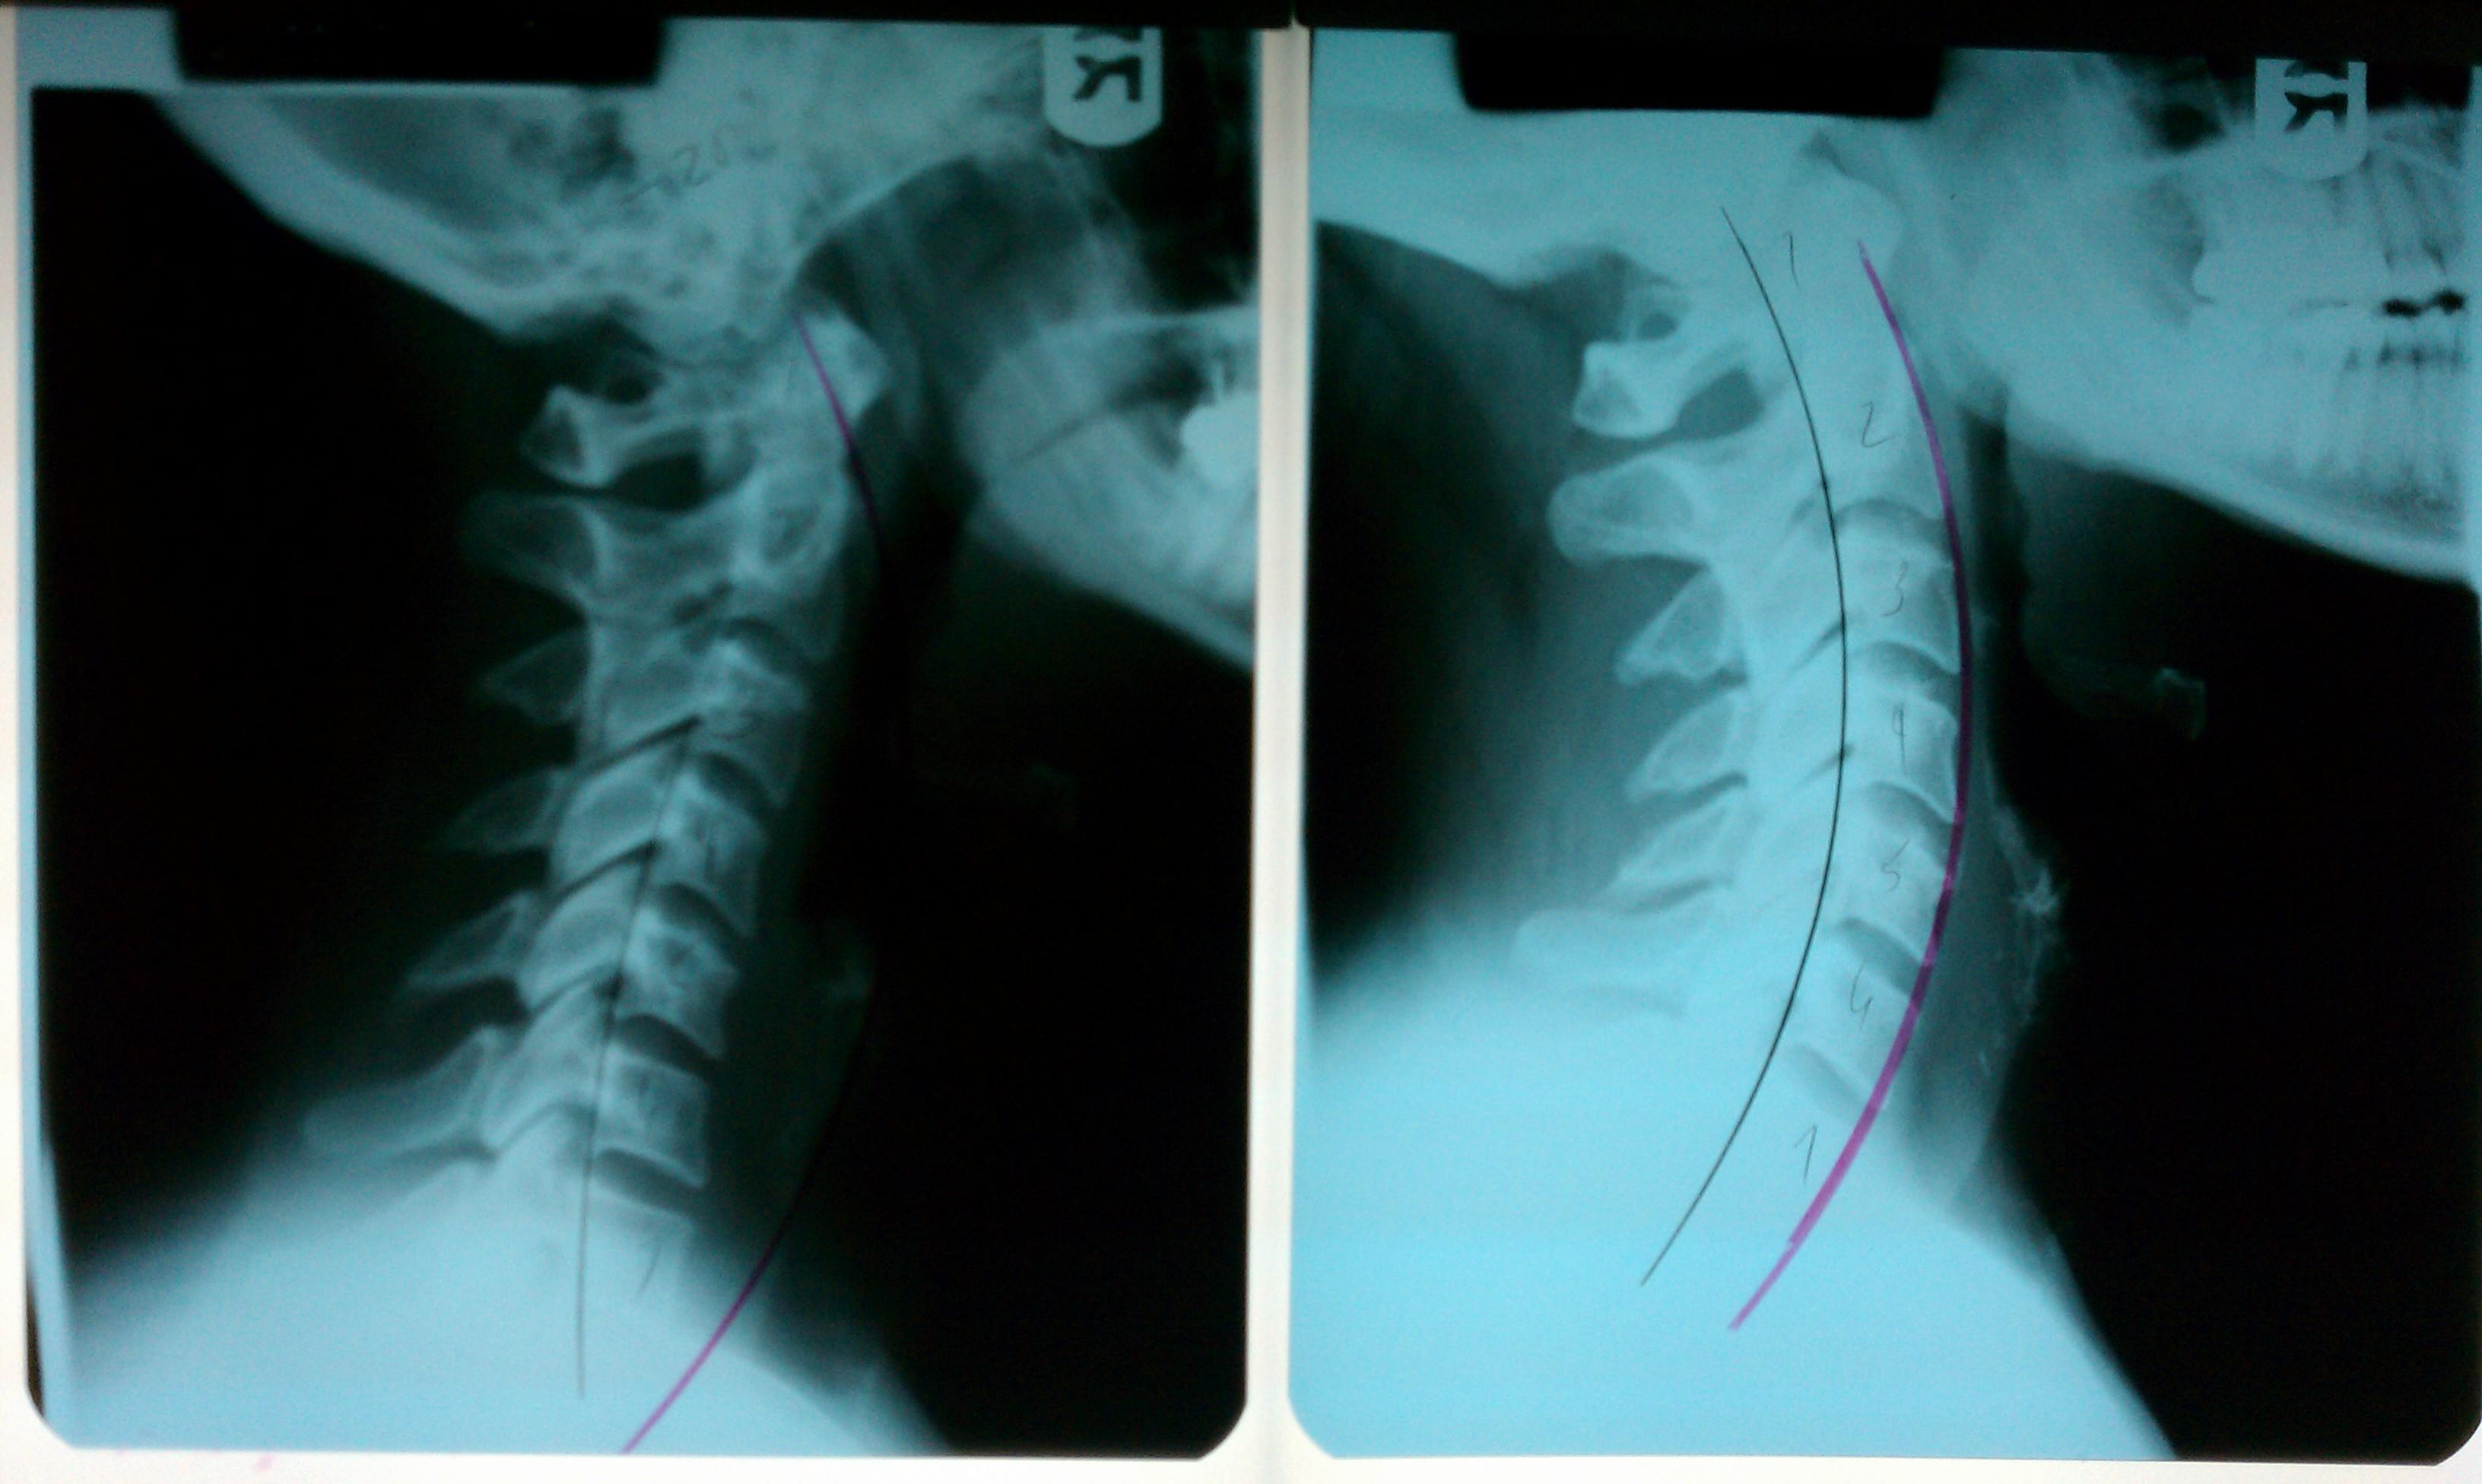 Chiropractic care and massage therapy can help improve posture and balance